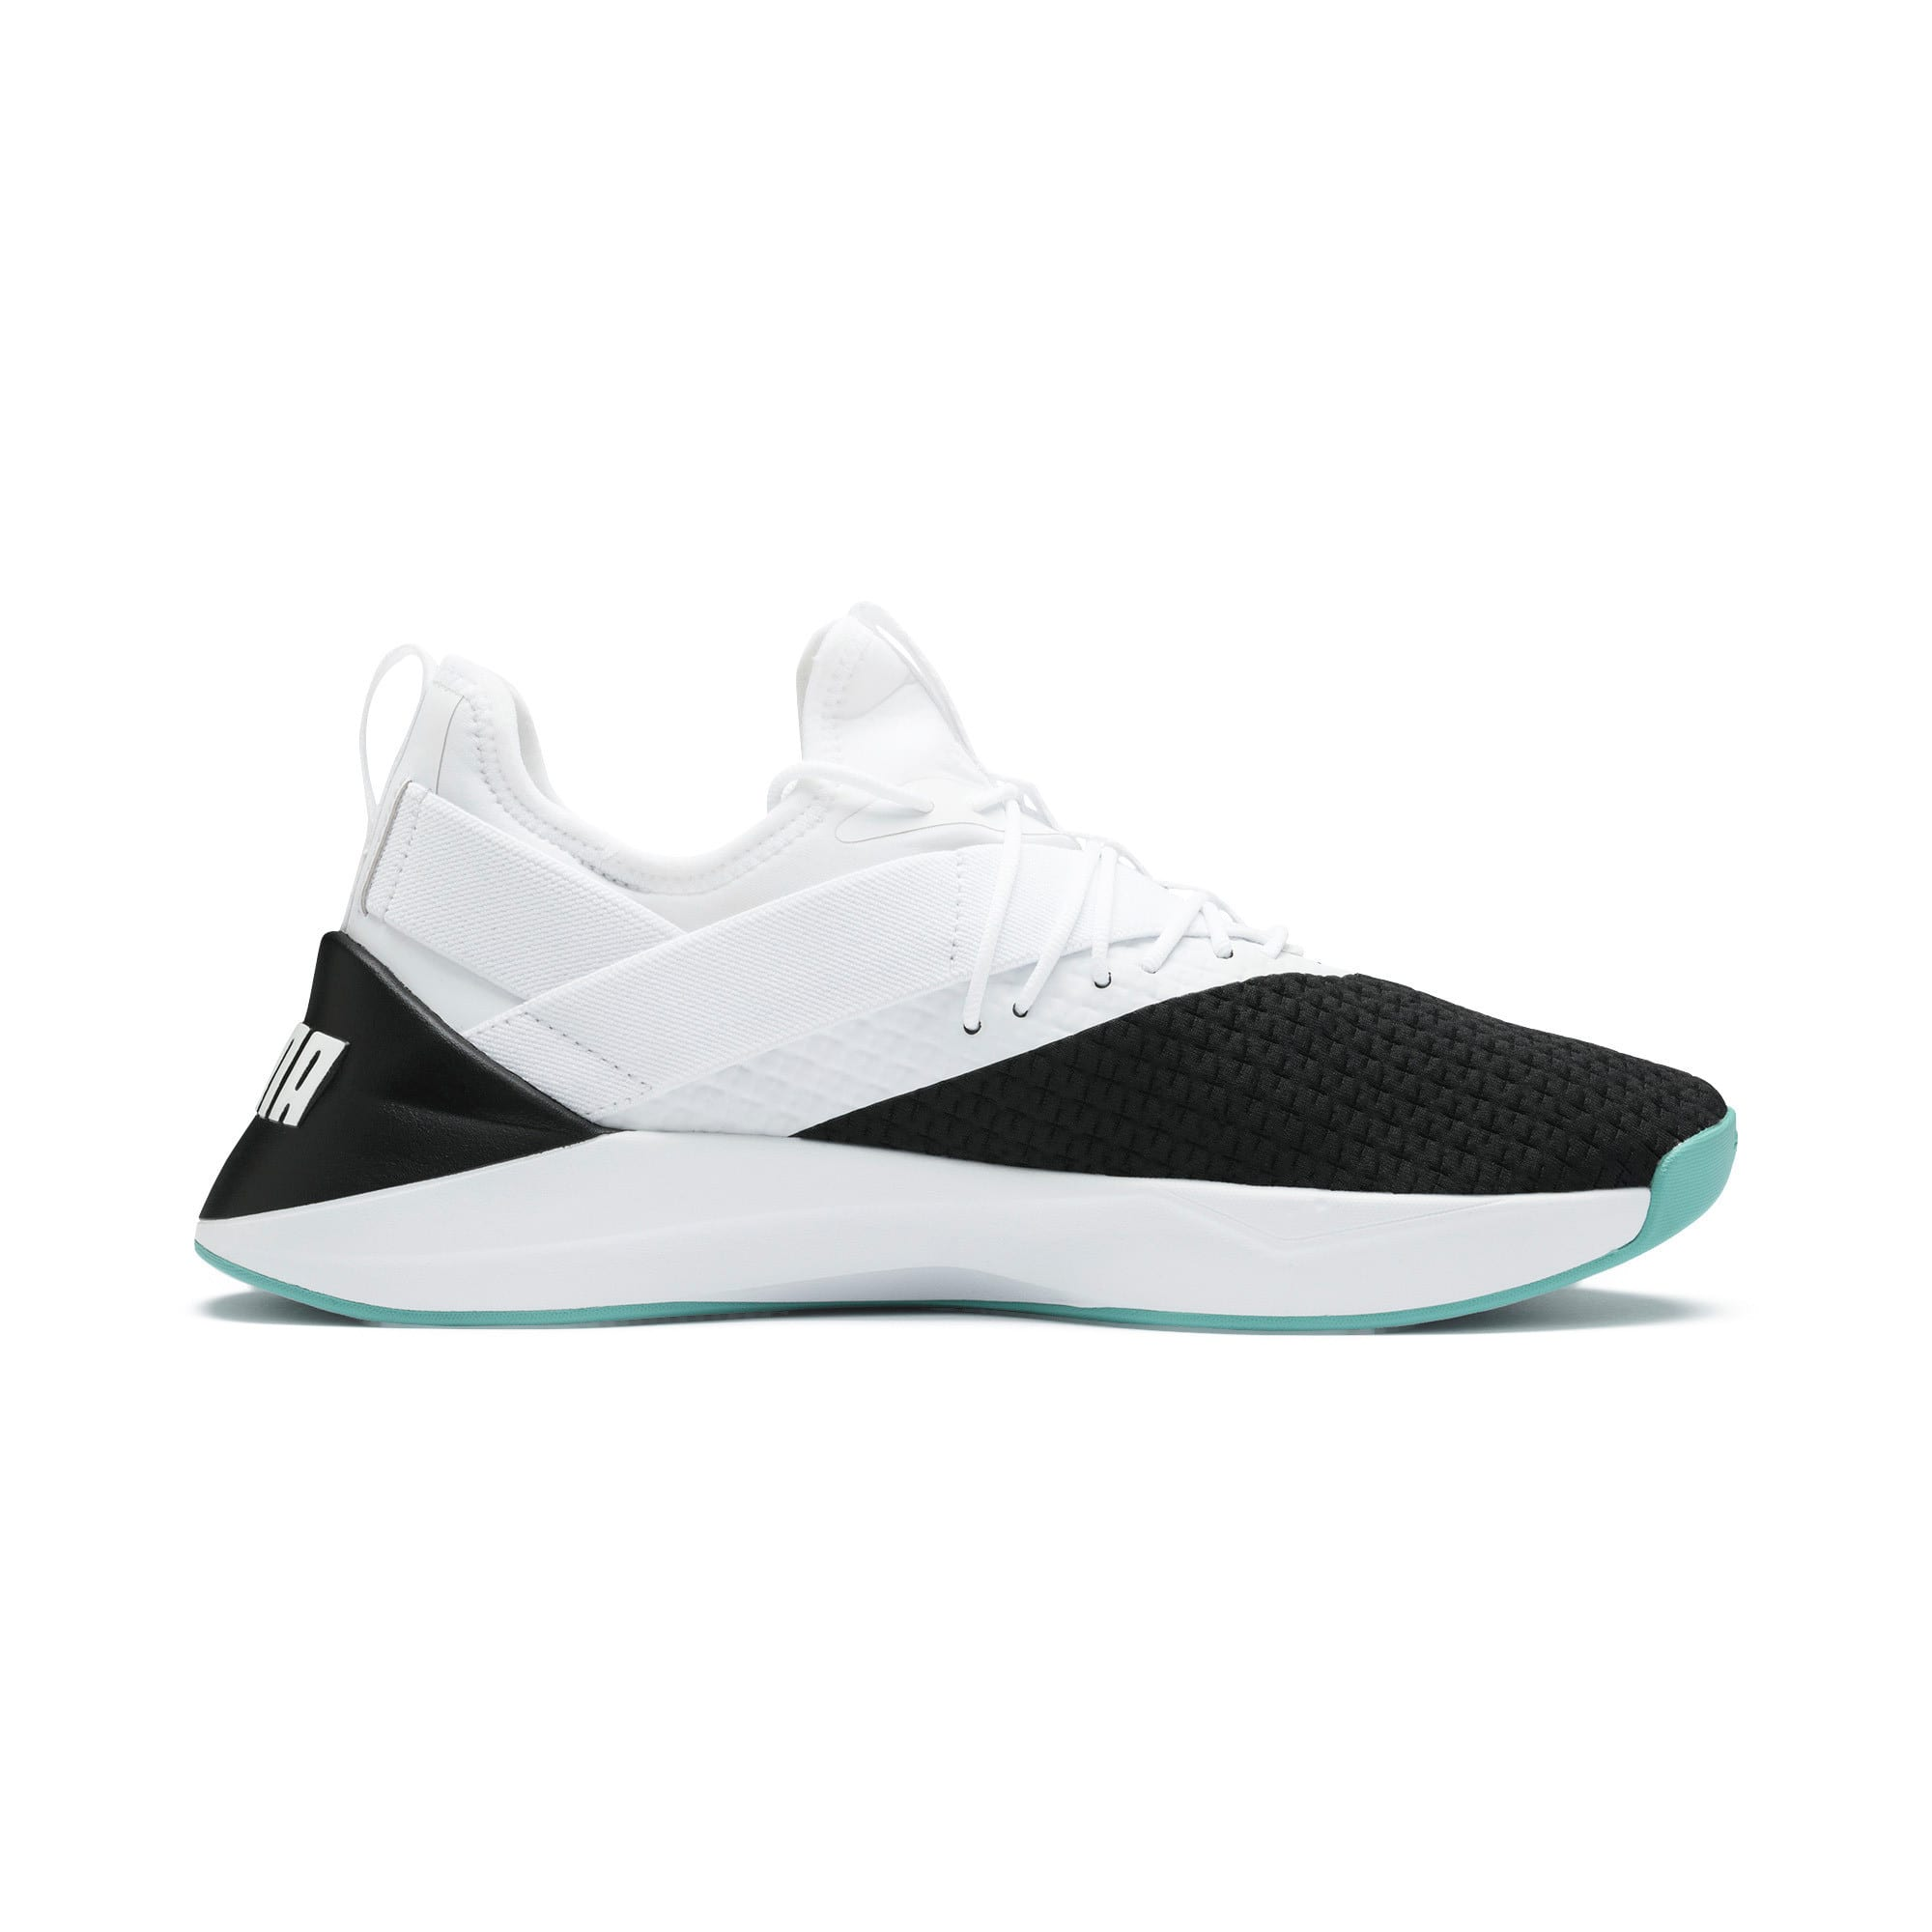 Jaab XT sneakers voor mannen, Puma White-Puma Black -1, large